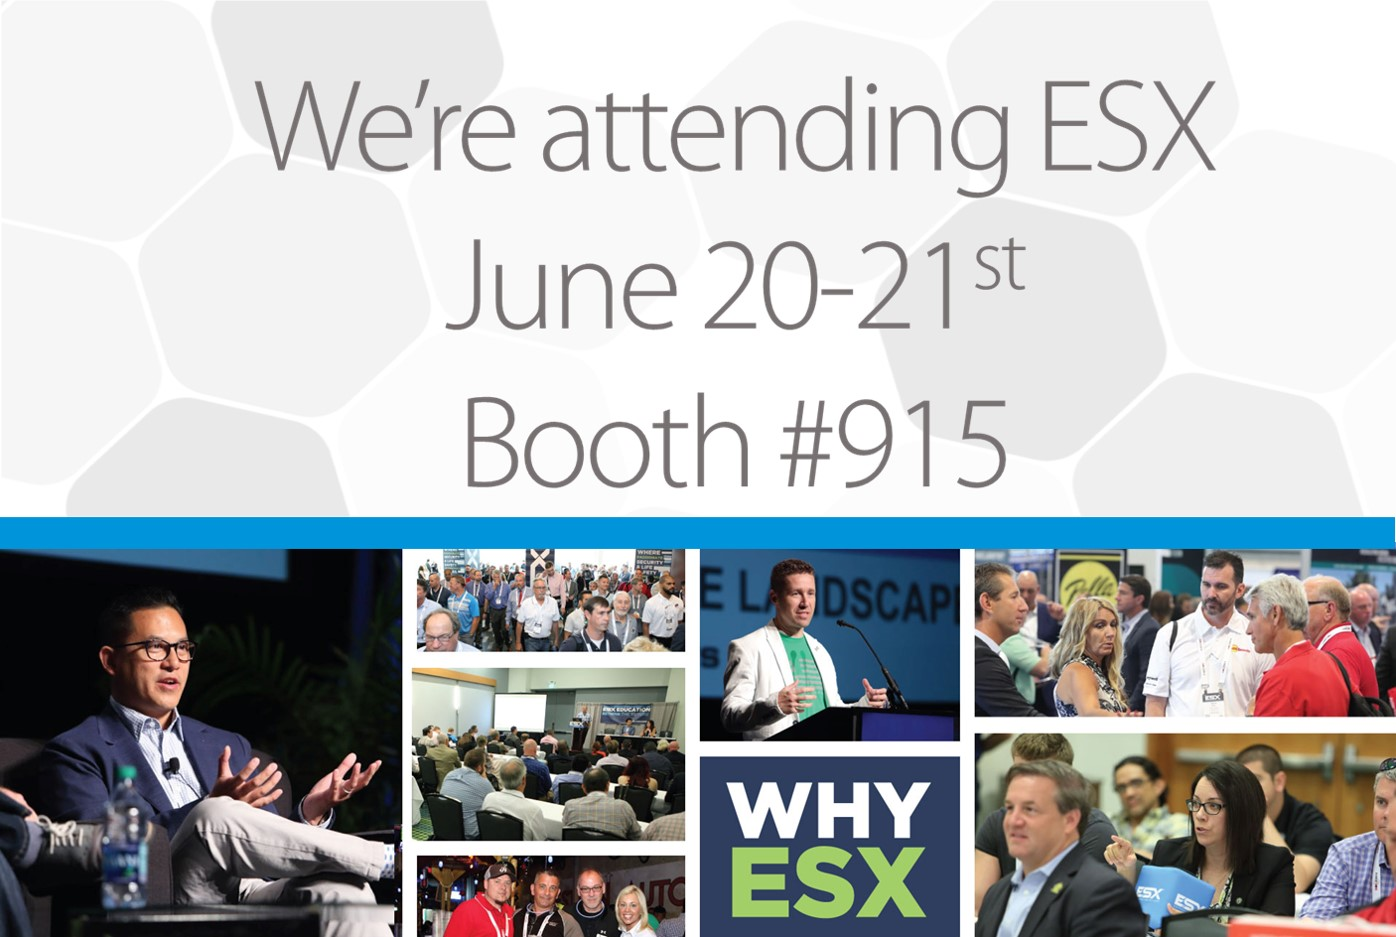 We'll Be Attending ESX!